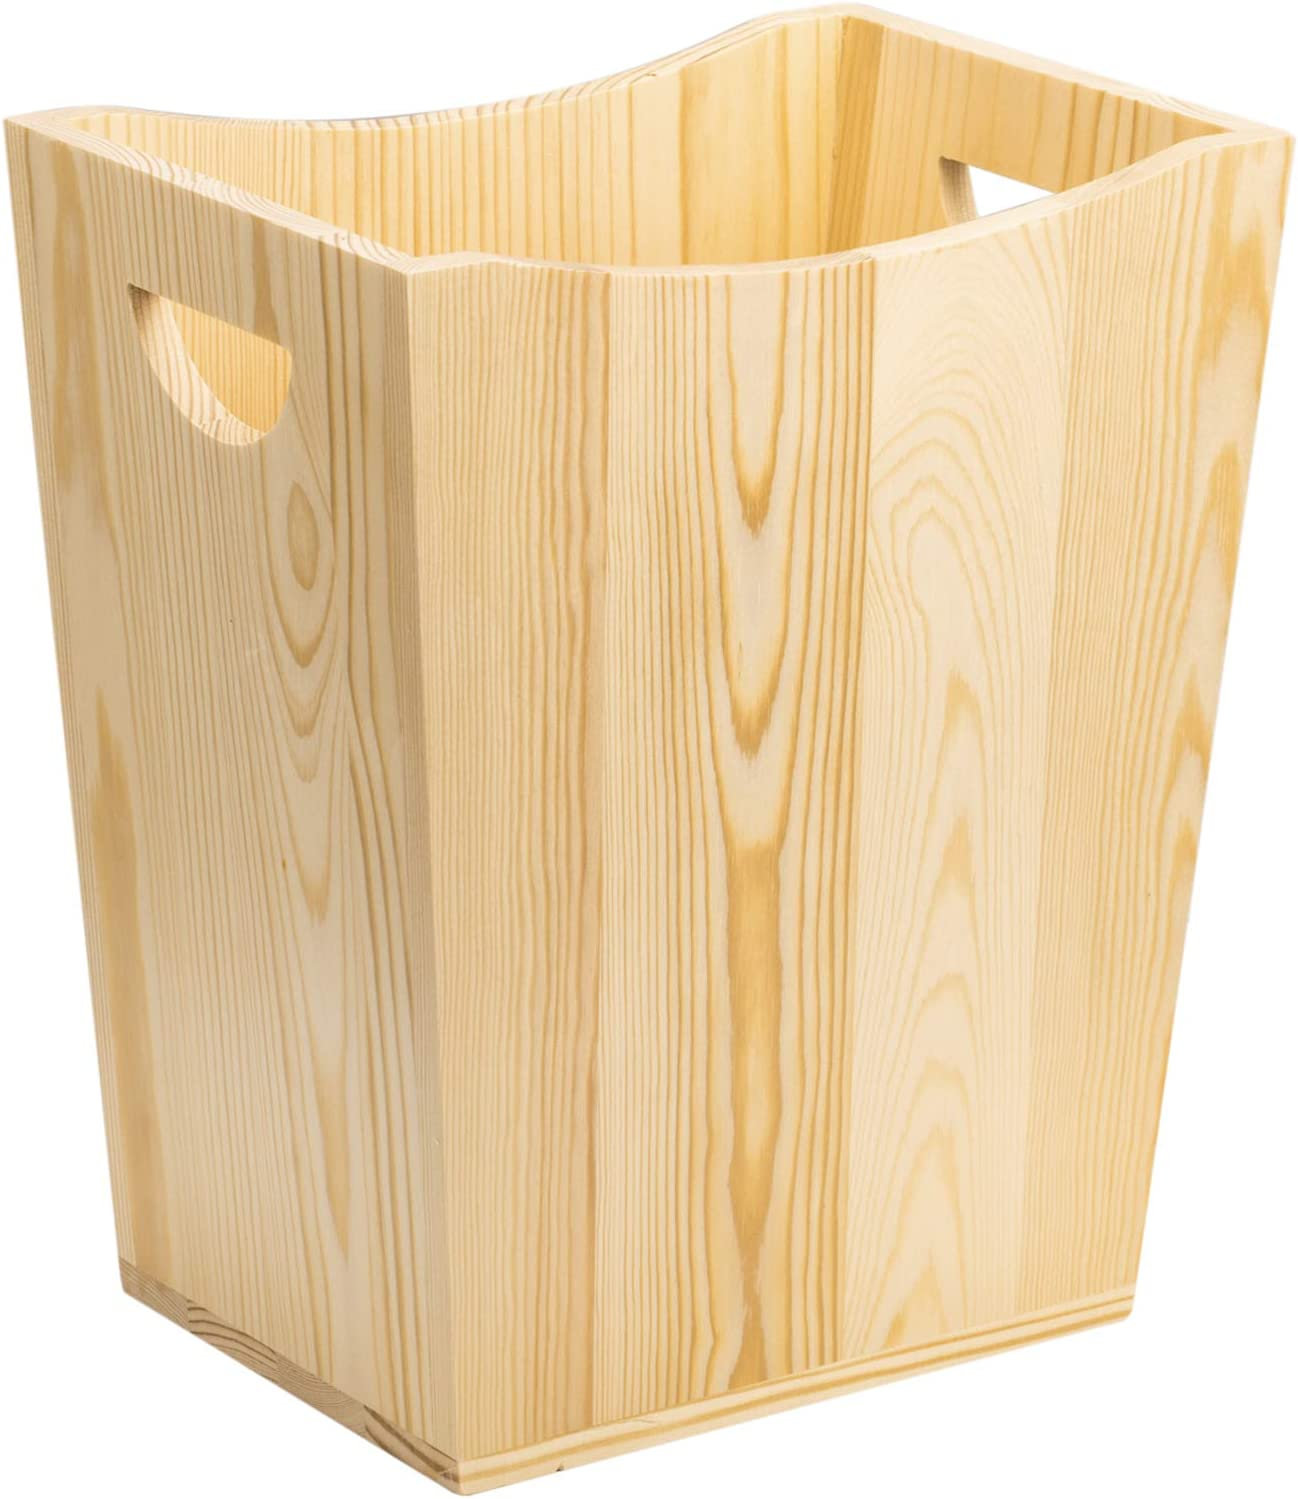 NEX Wood Trash Can, Rustic Farmhouse Style Wastebasket Bin for Bathroom, Office, Bedroom, Living Room